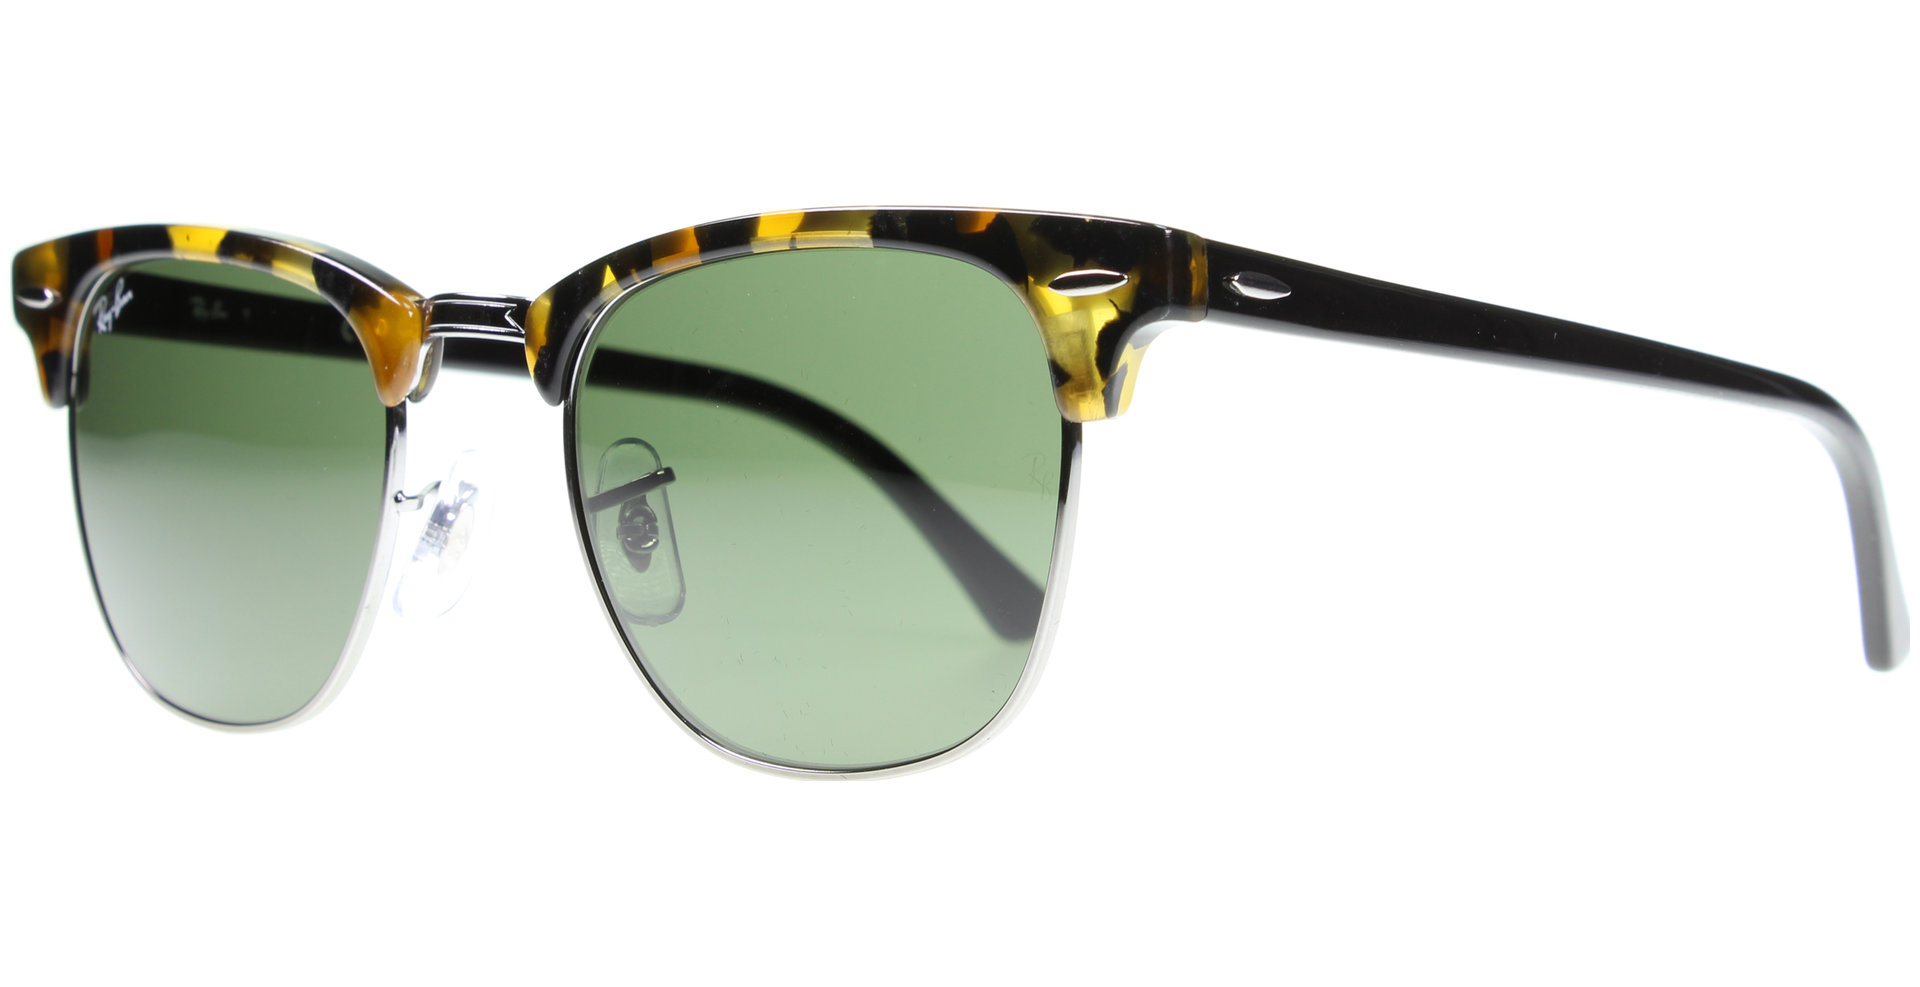 3466a2ee780 Ray Ban Clubmaster 4921